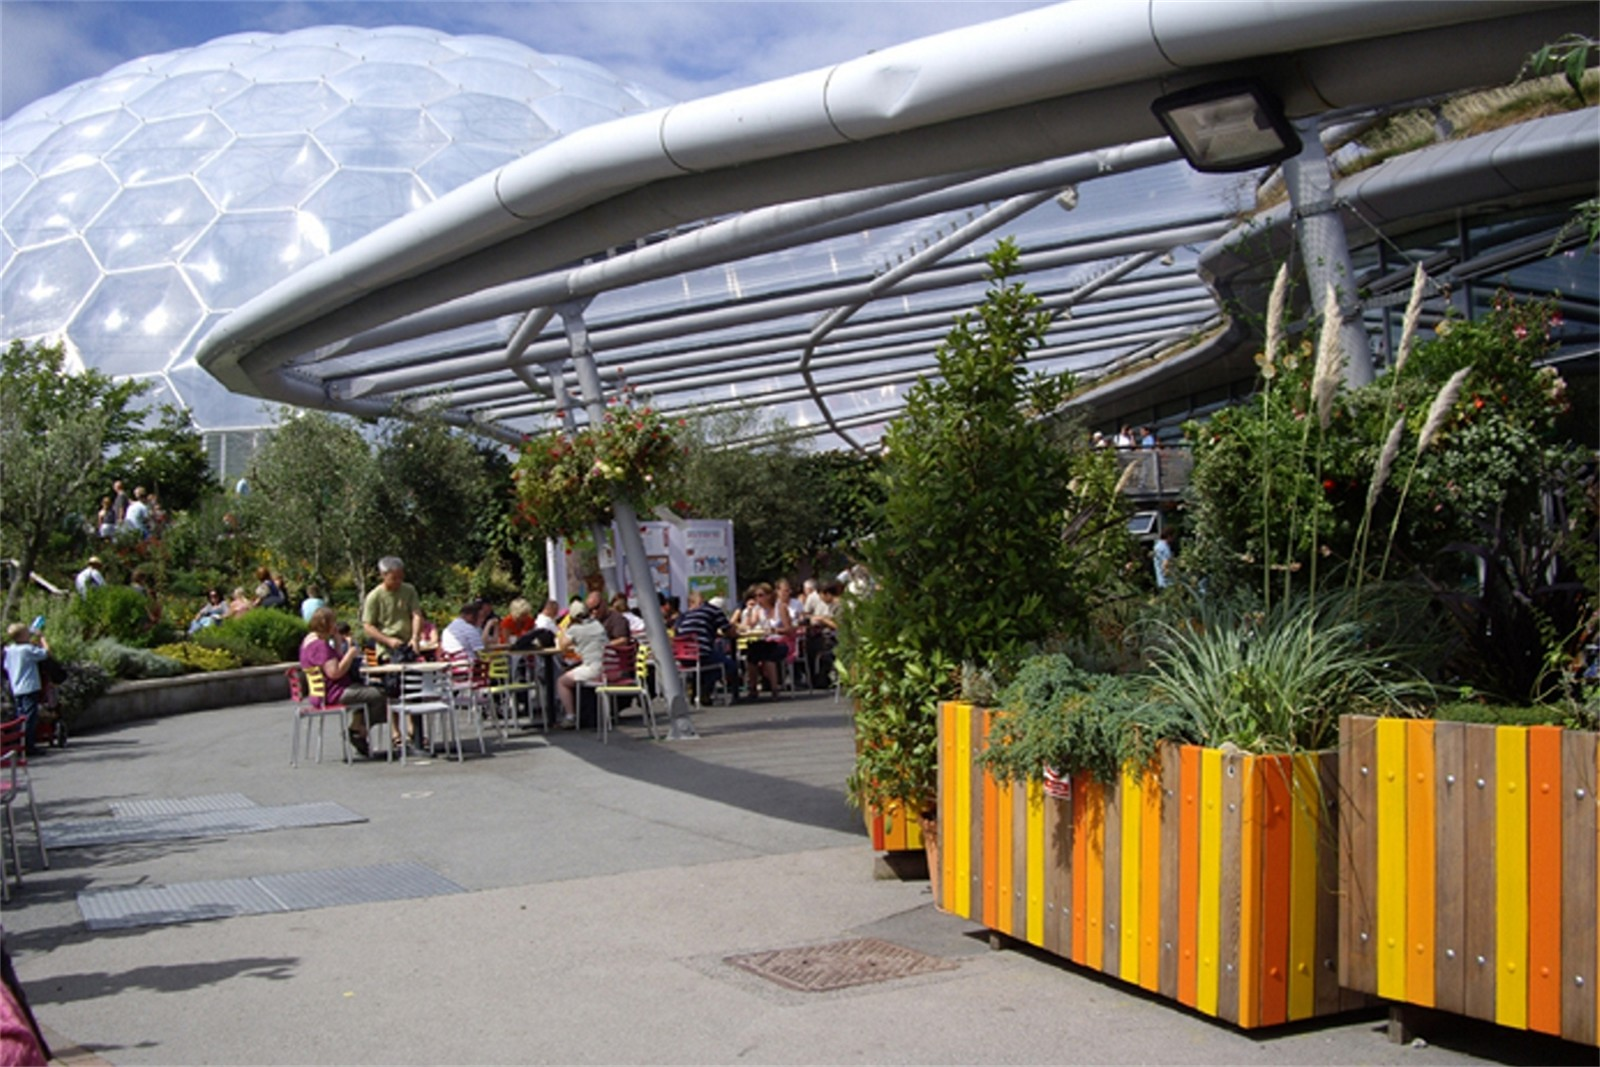 c12605 - Swithland planters supplied to the Eden Project